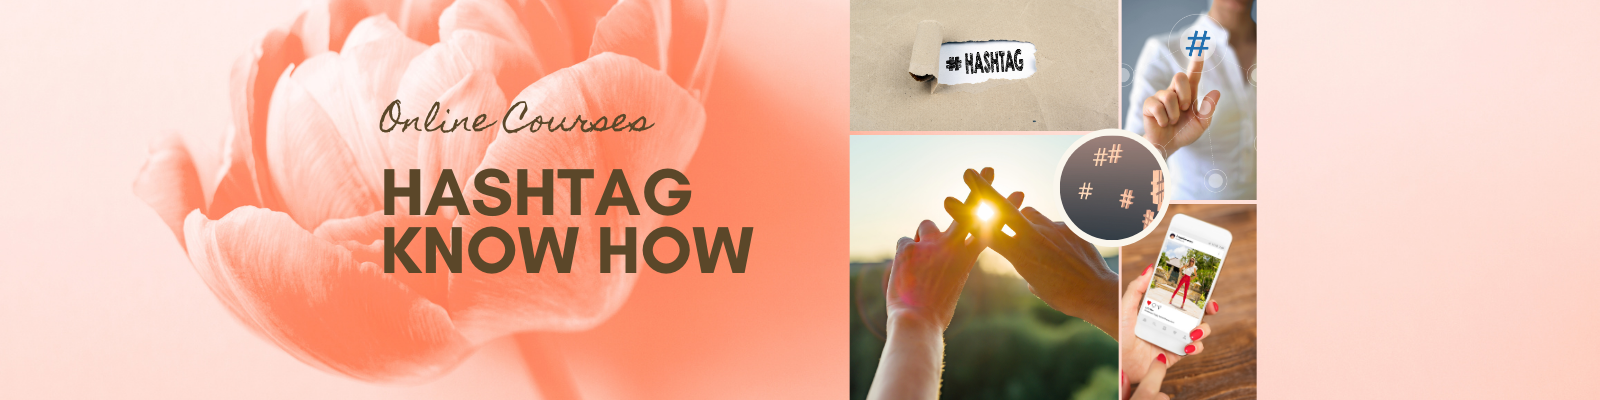 Hashtag Know How - Cn Creative.png